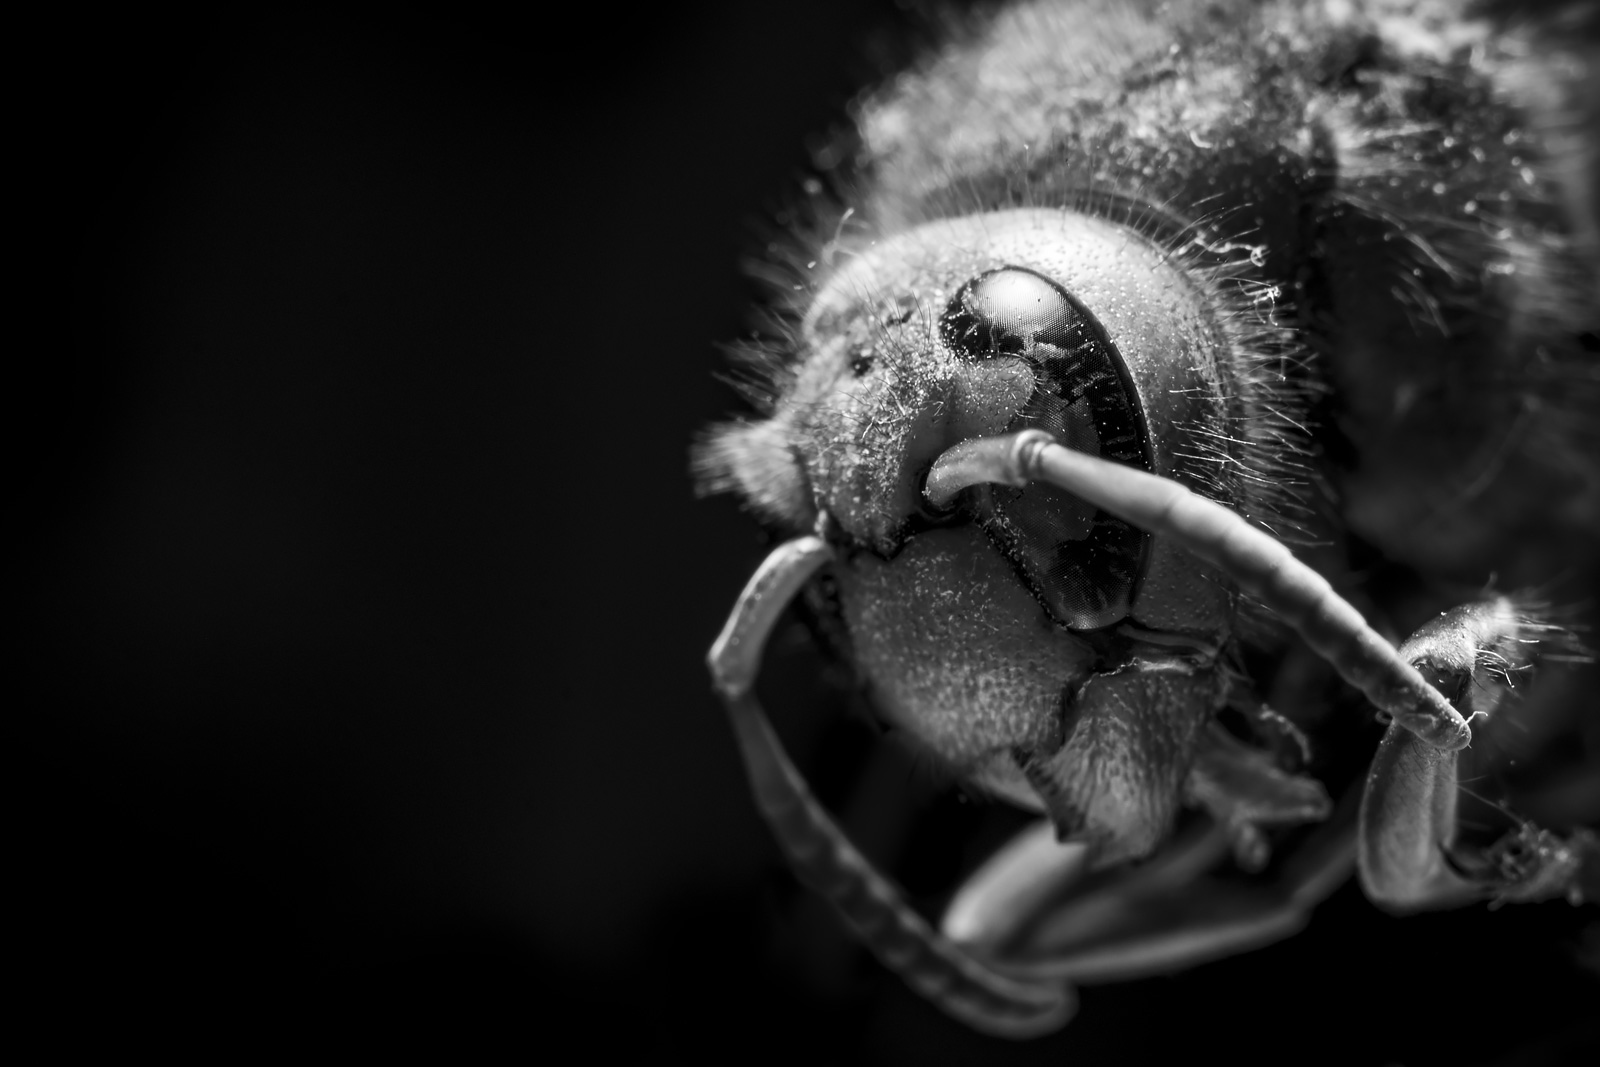 Artistic monochrome composition macro close up of dead European Hornet Vespa Crabro head showing compound eye against dark background black and white ©P. Maton 2018 eyeteeth.net